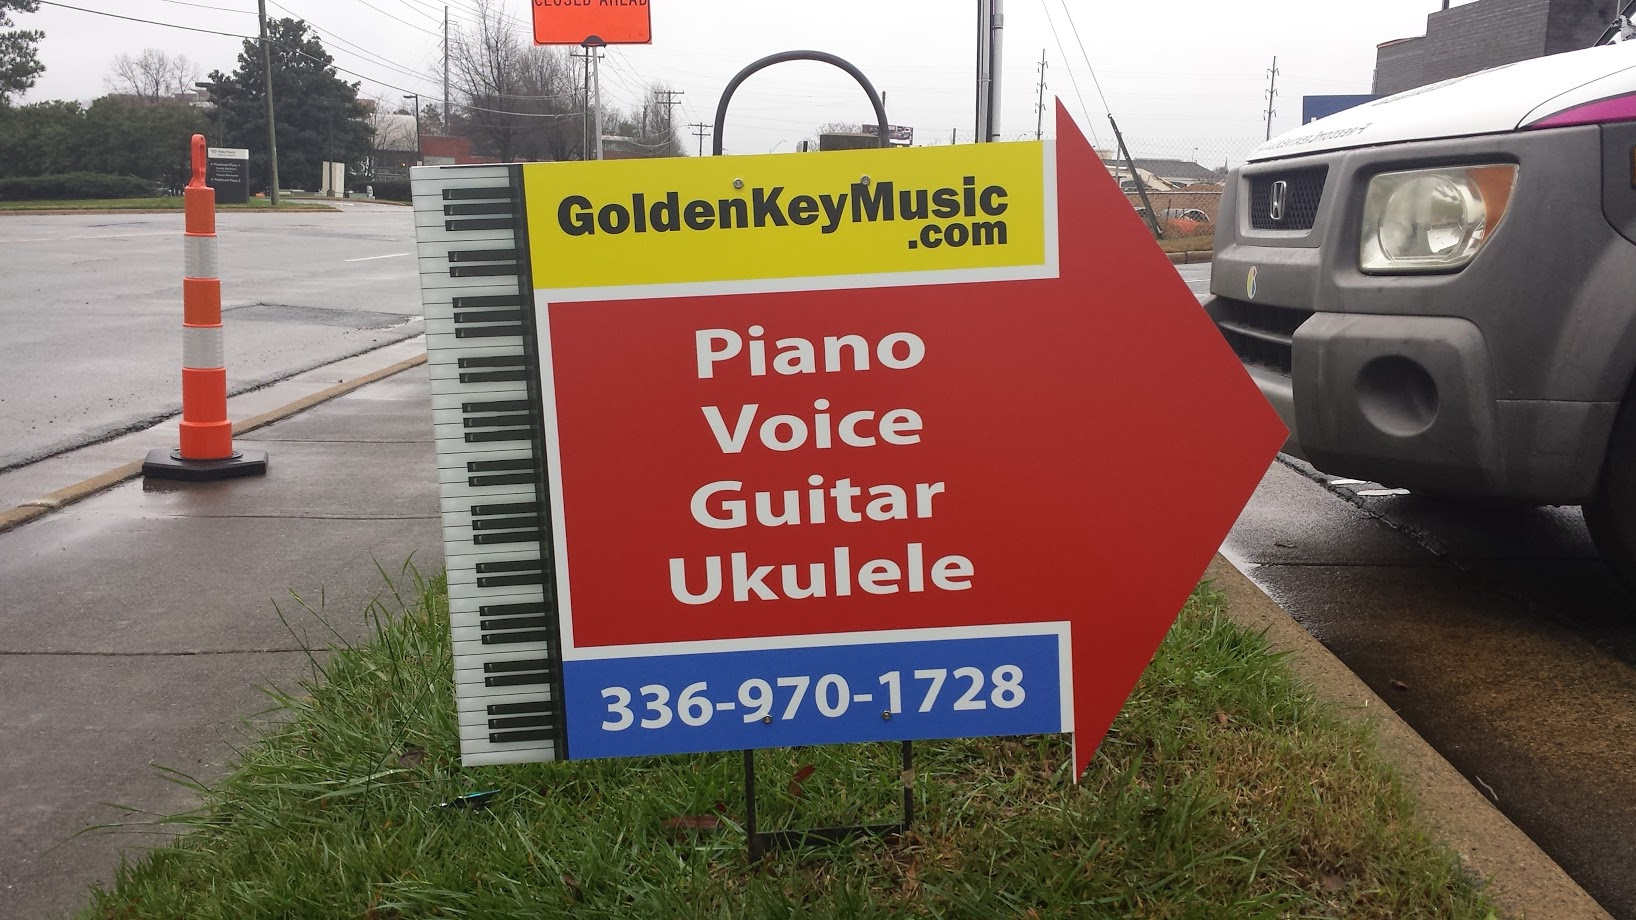 golden-key-music-piano-voice-guitar-ukulele-signage